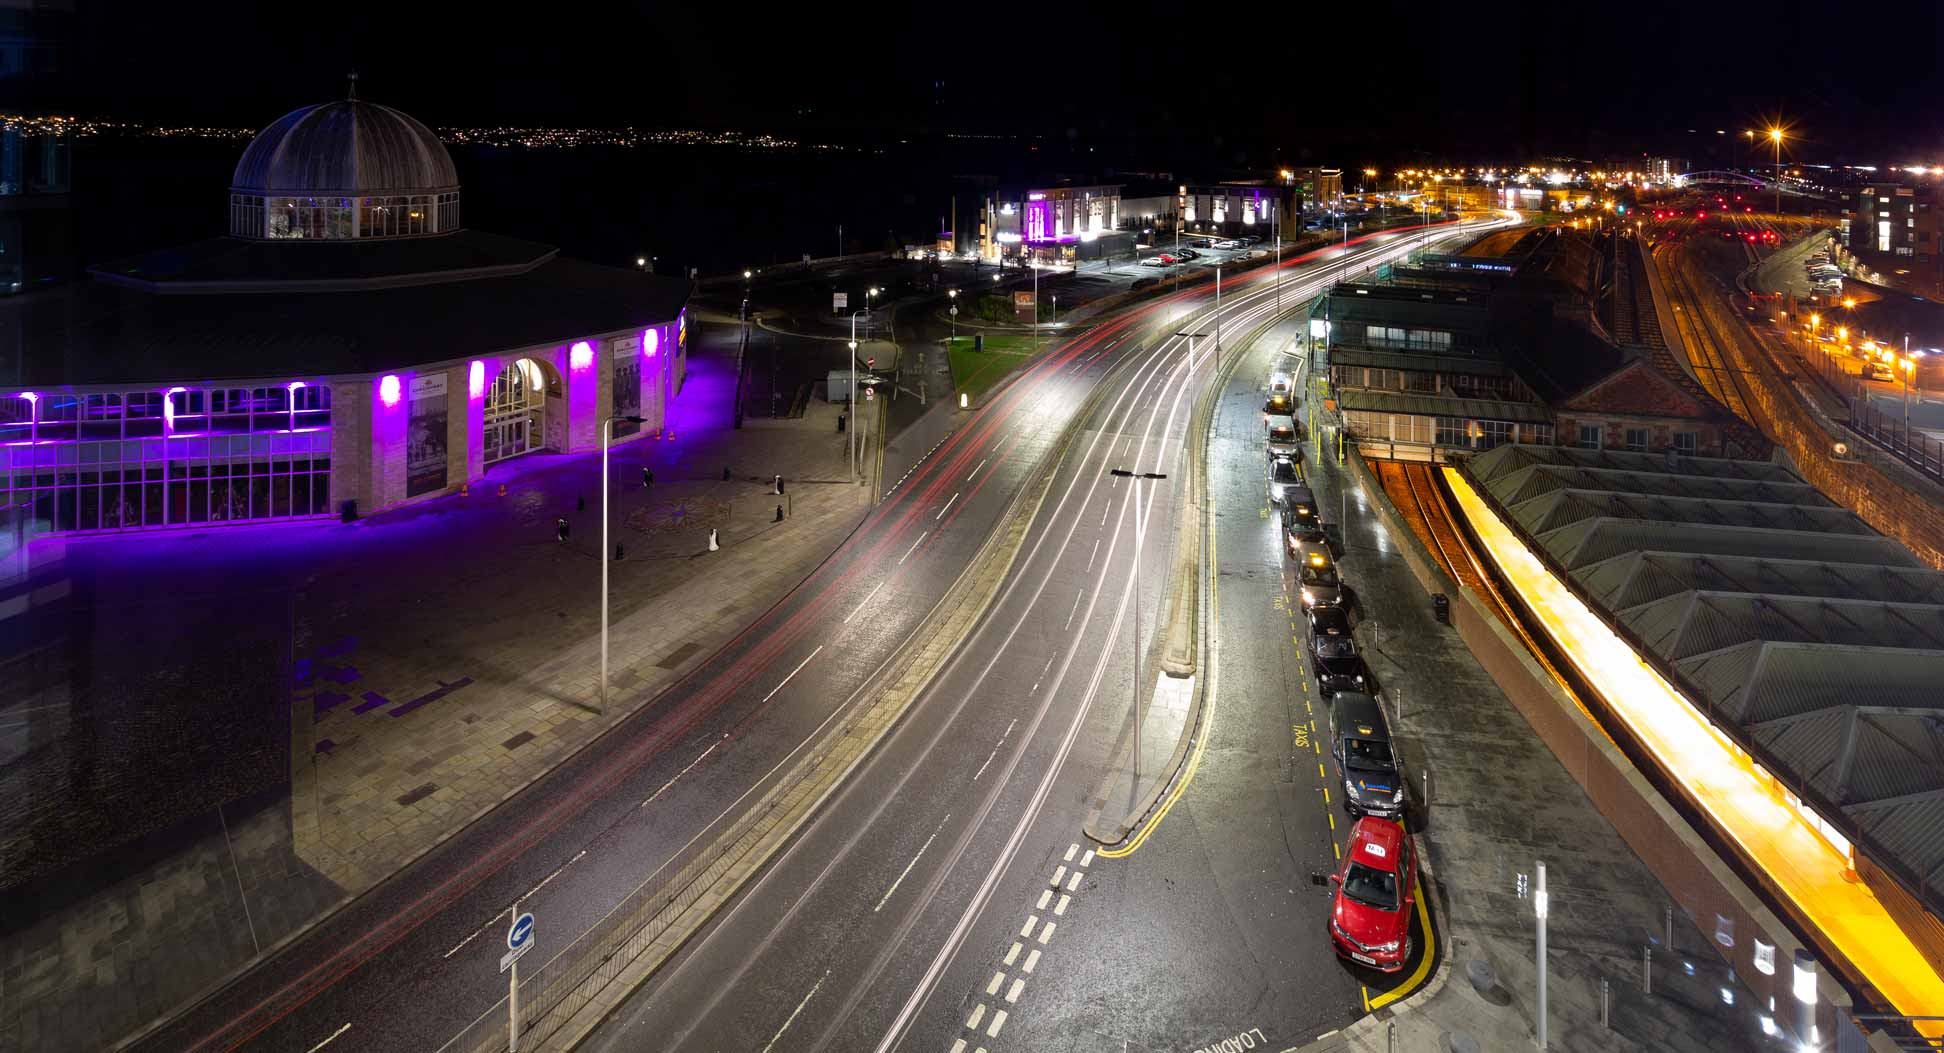 view-of-Discovery-Cafe-and-DUndee-Premier-Inn-from-Sleeperz-Hotel-DUndee-window